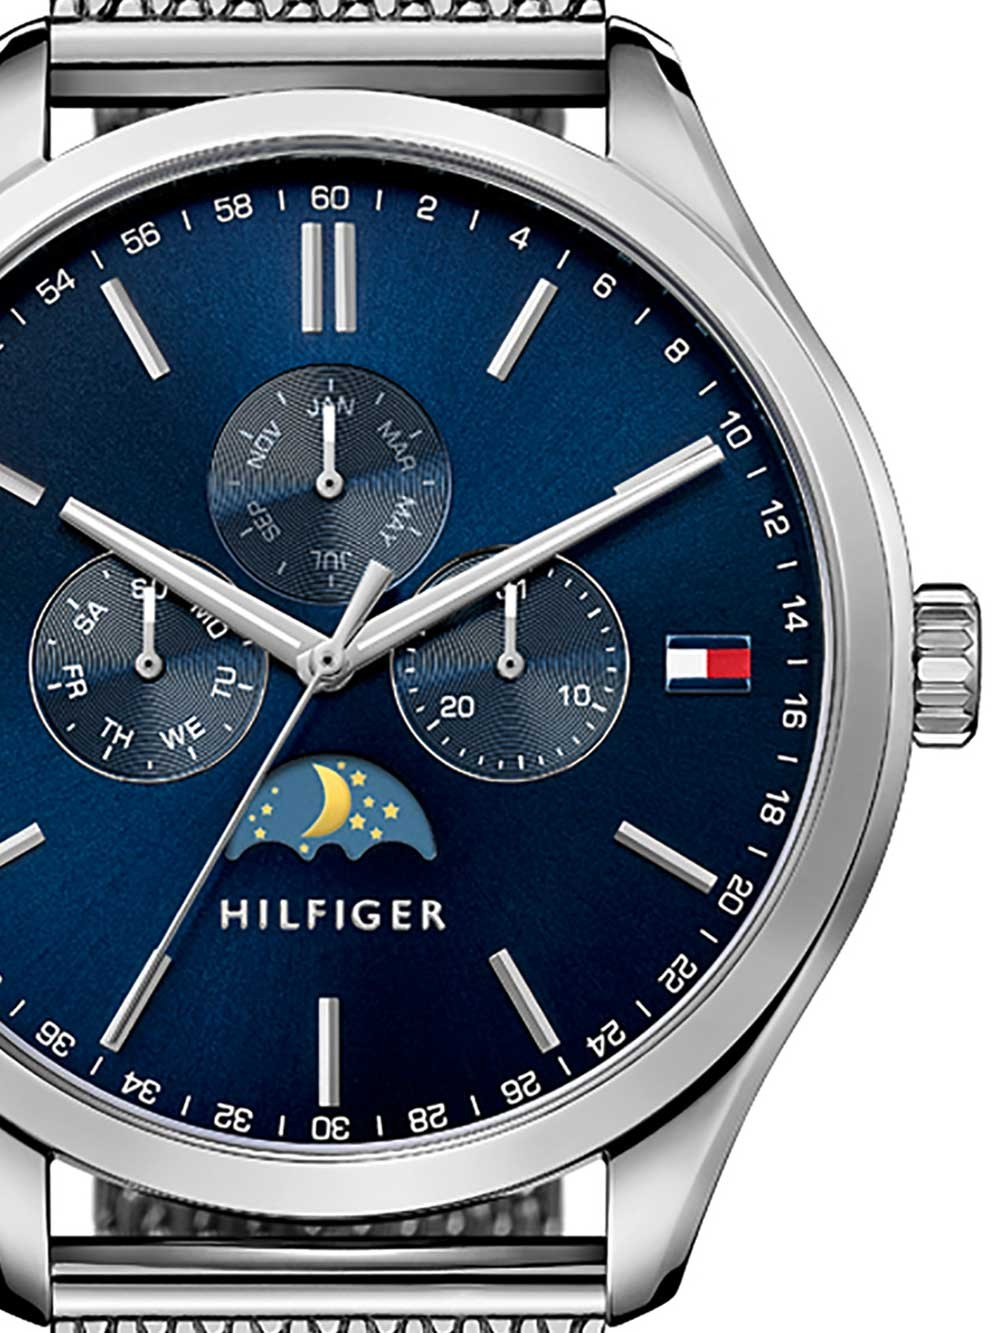 watches chrono12 tommy hilfiger 1791302 sport luxury. Black Bedroom Furniture Sets. Home Design Ideas